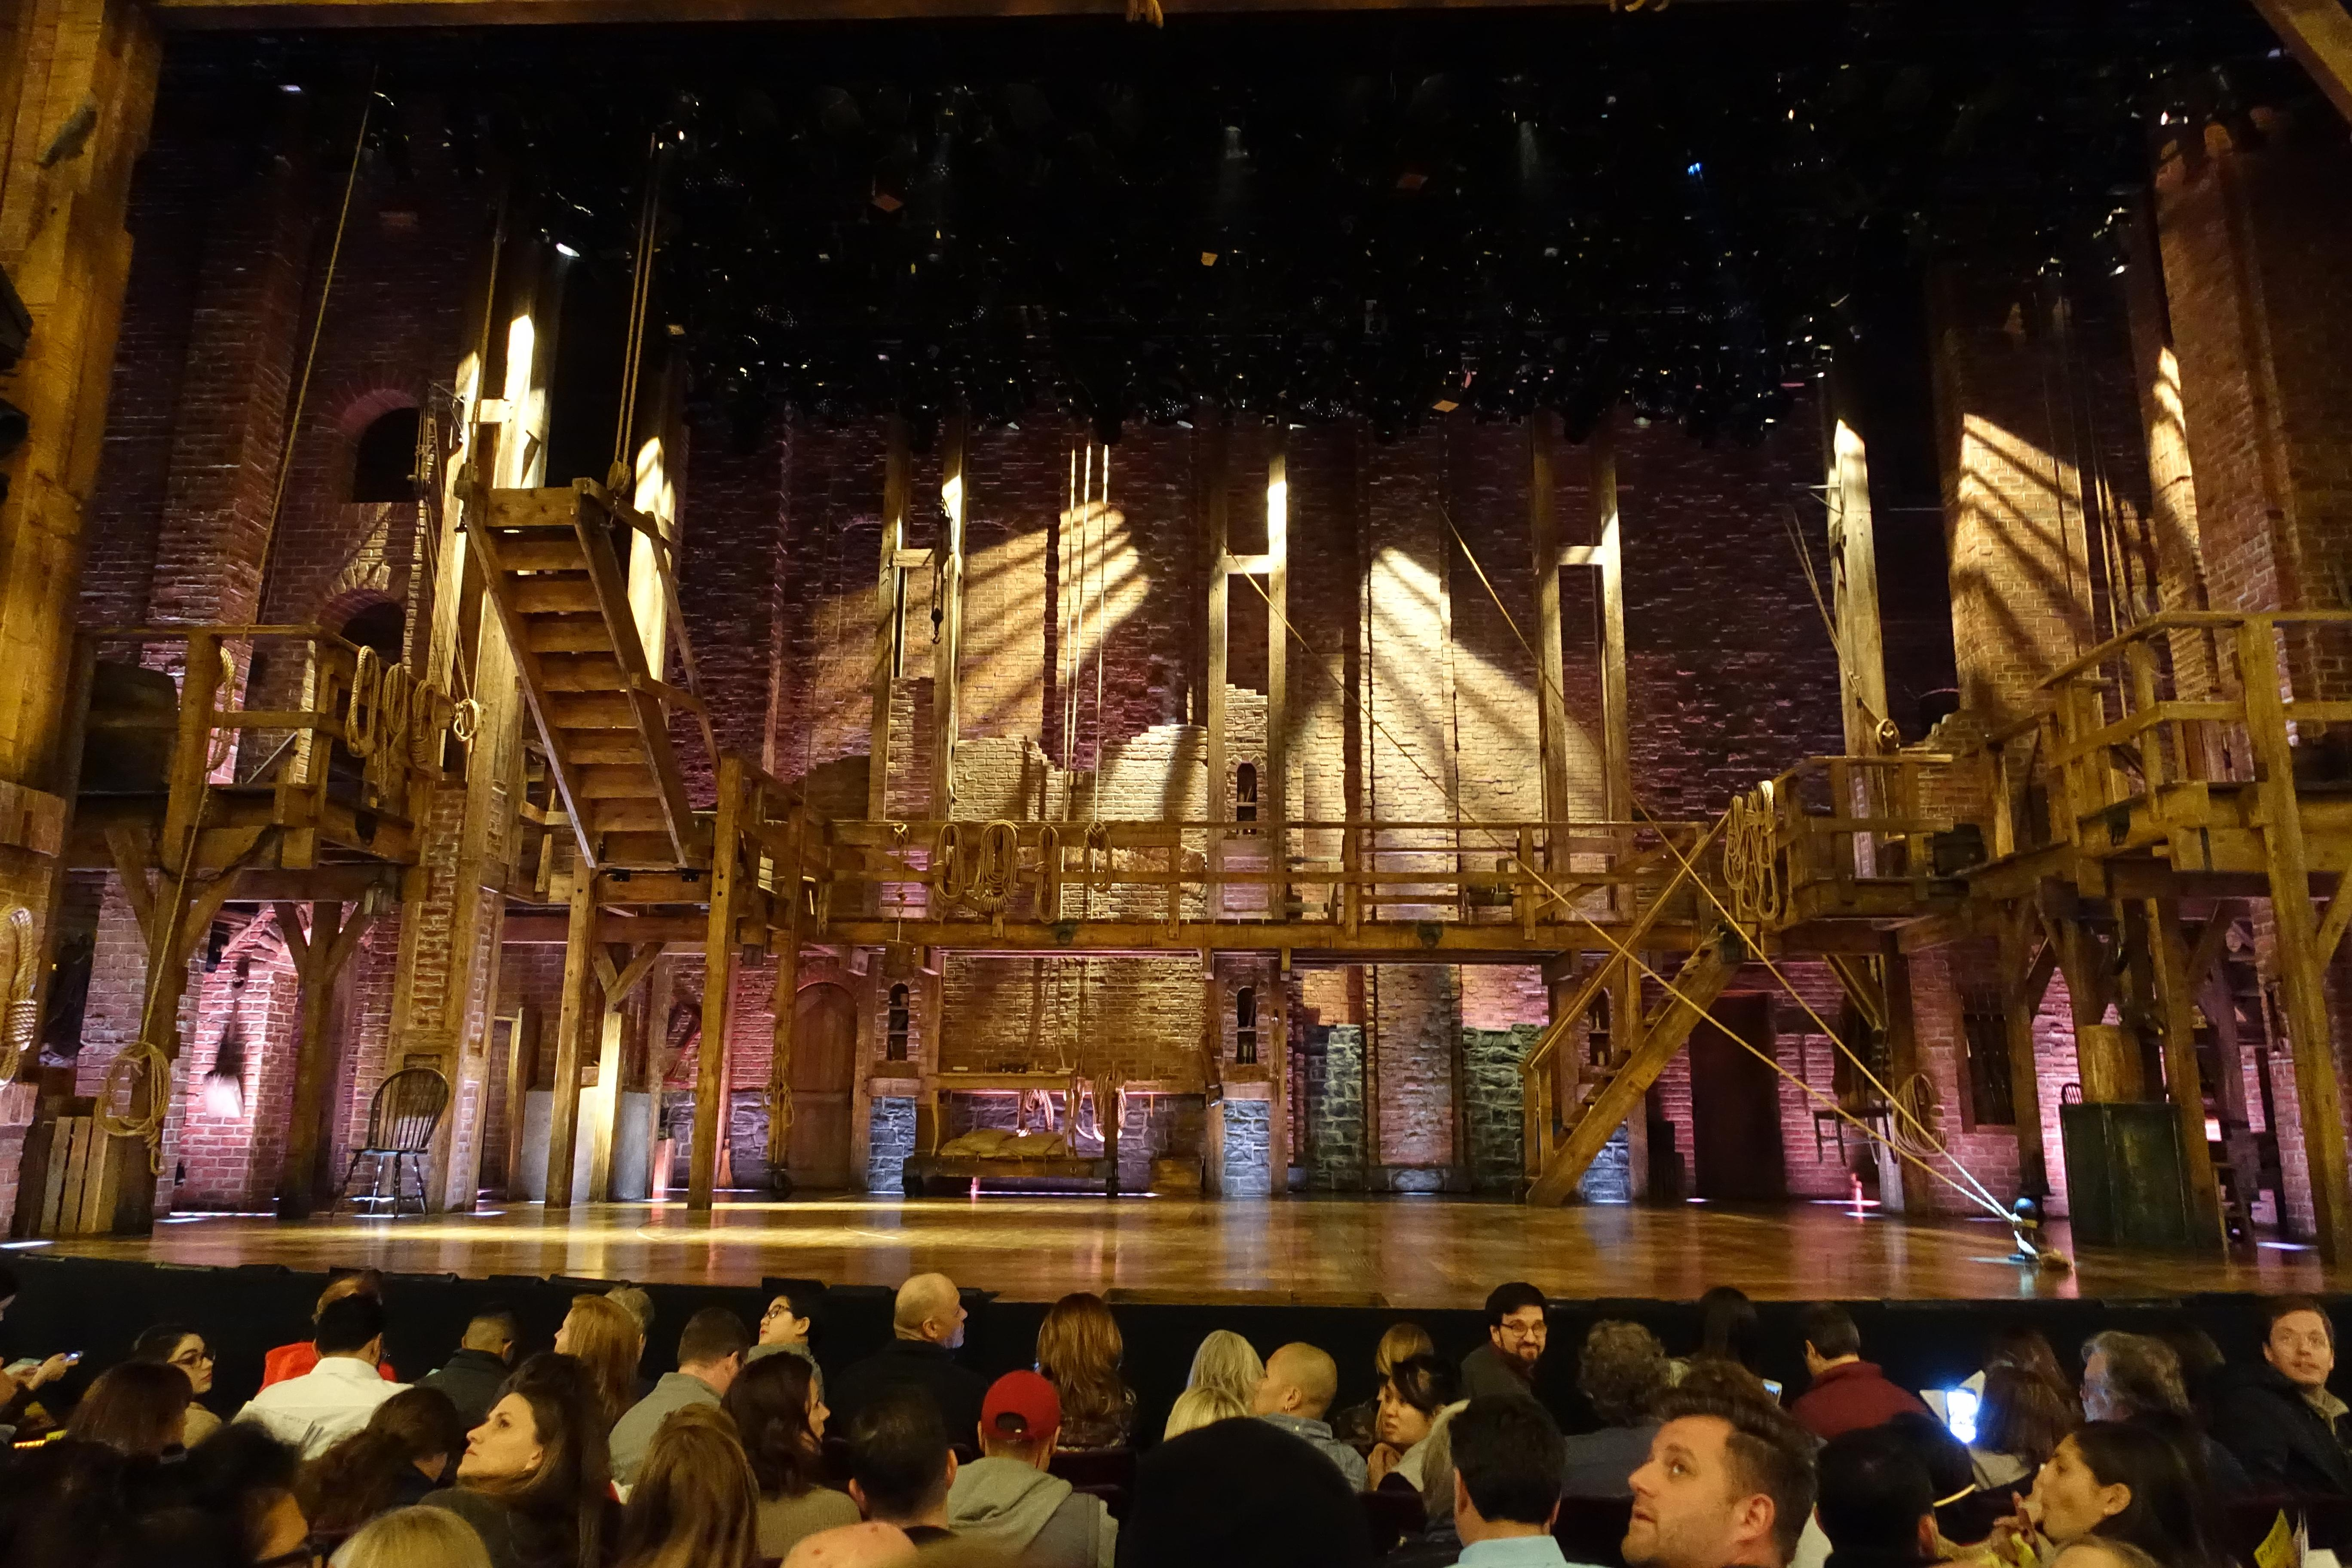 Richard Rodgers Theatre Section Orchestra Center Row G Seat 106